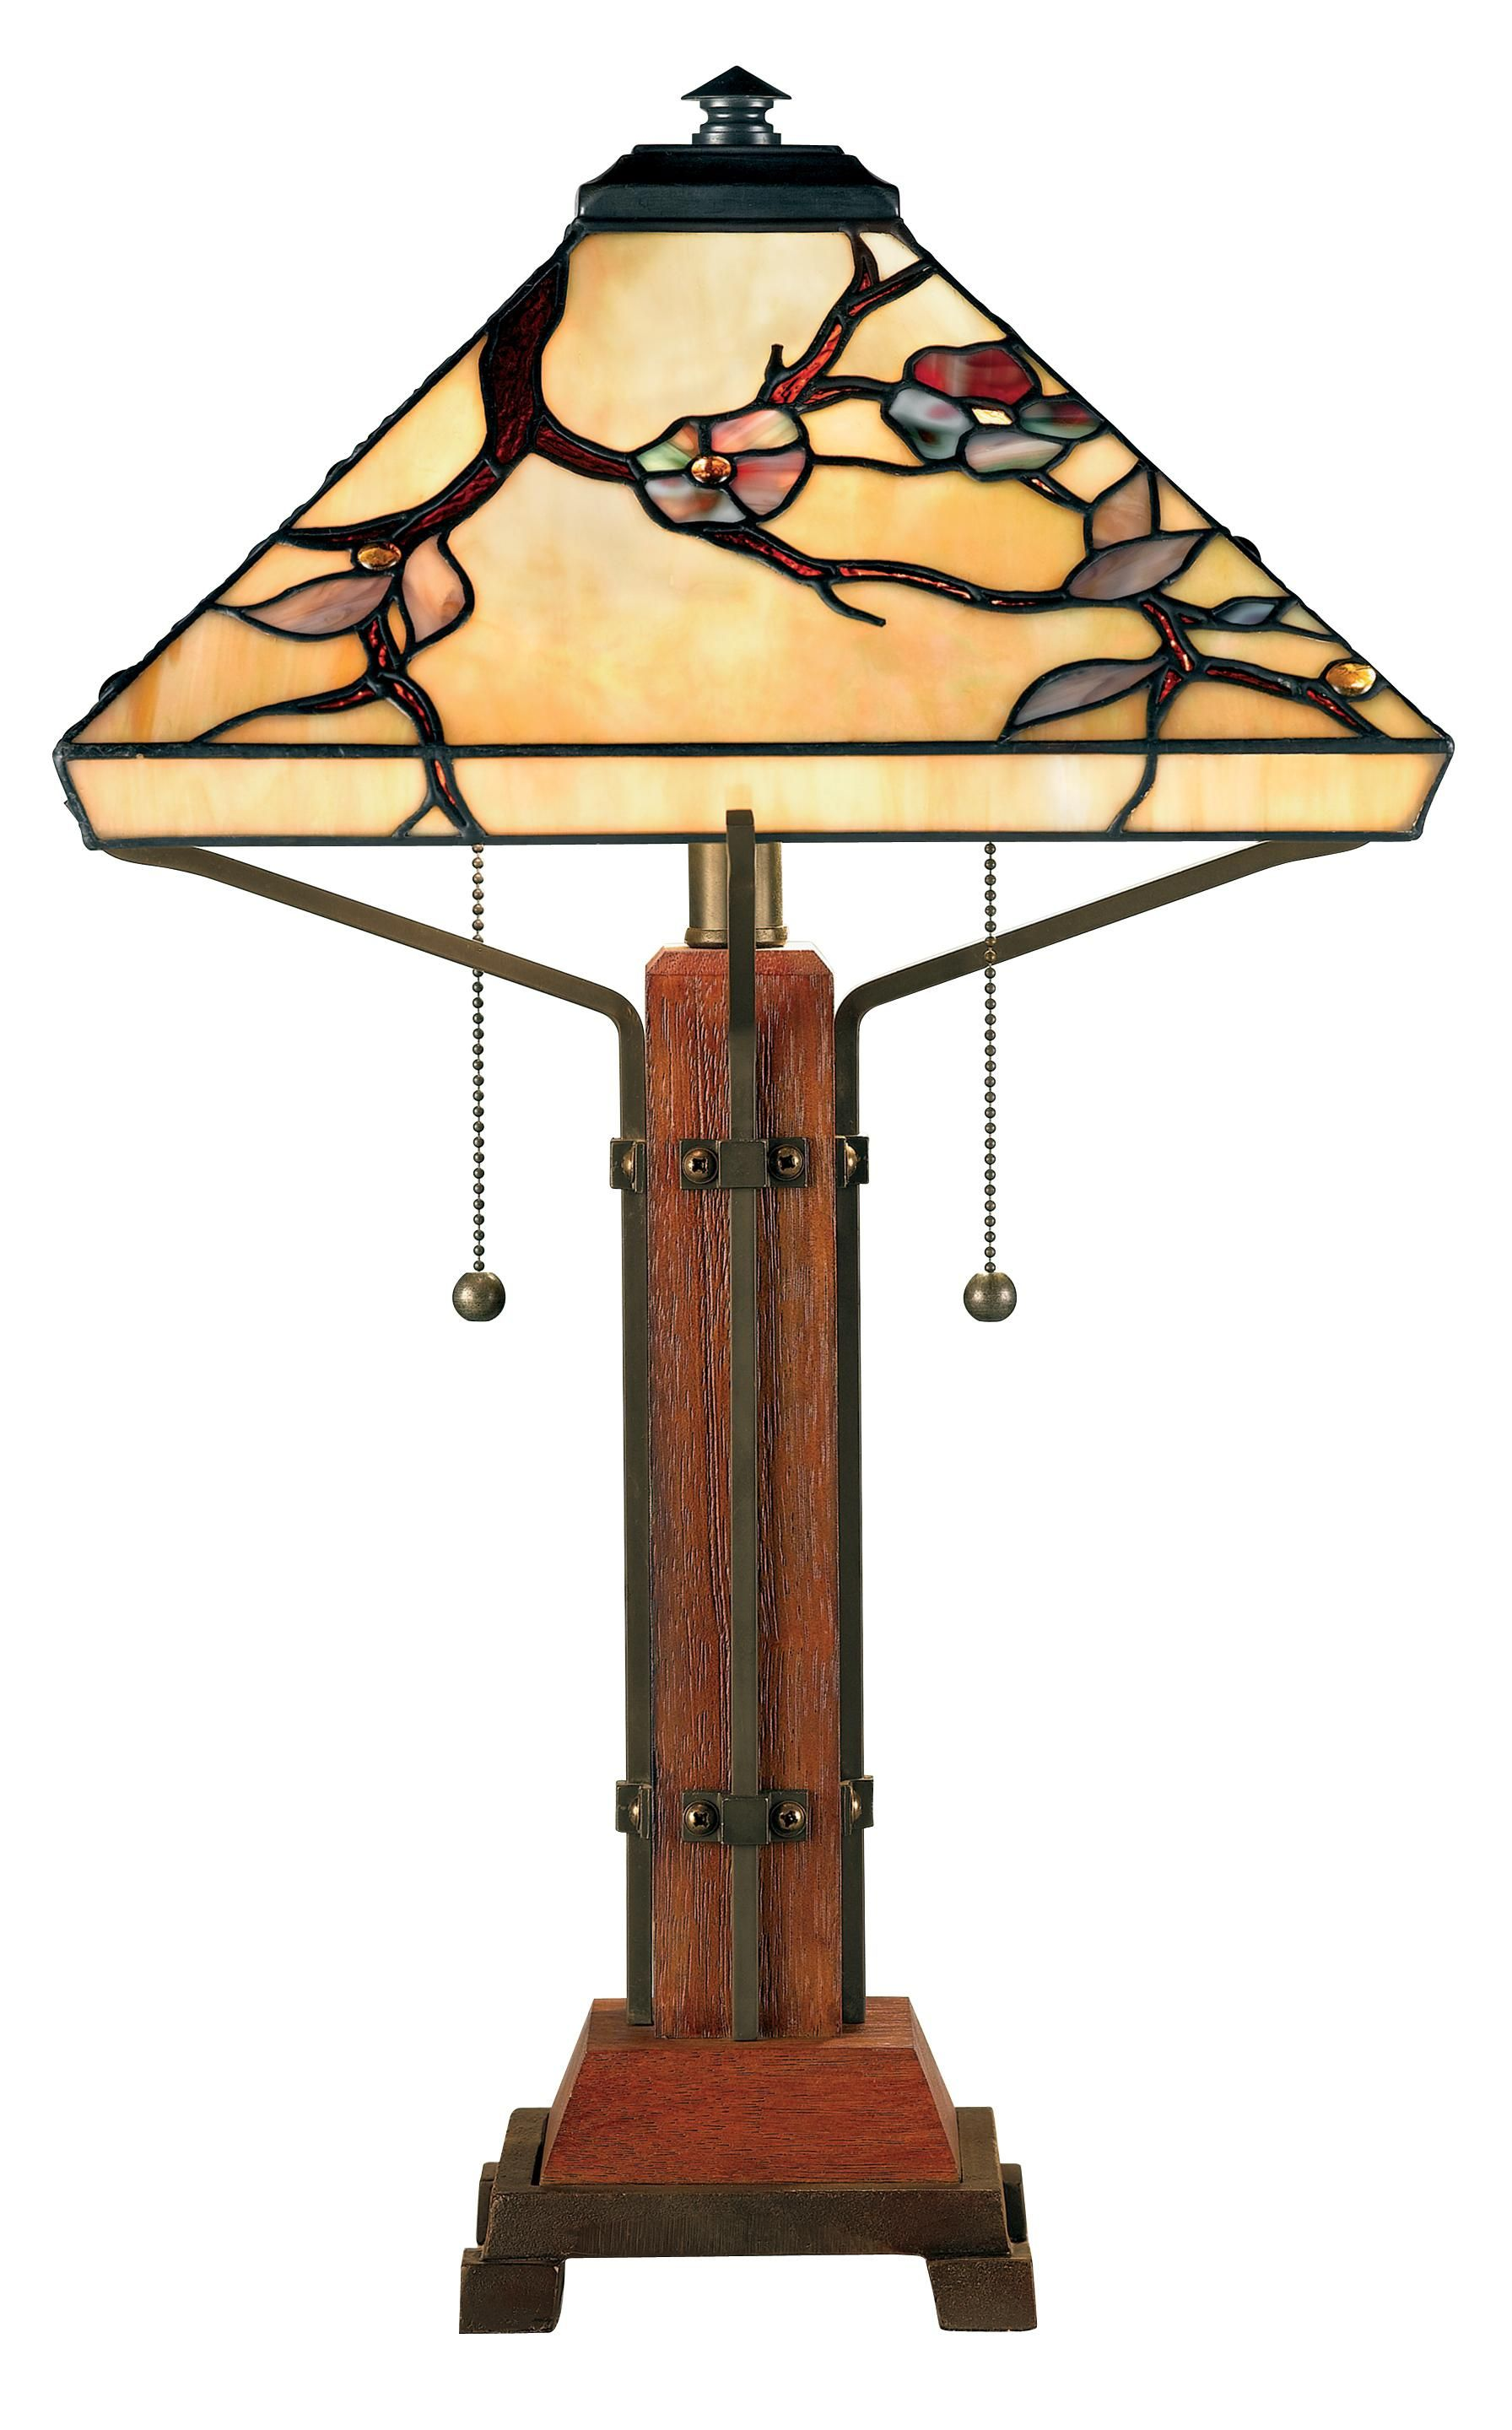 cfm bronze rose inch glass tiffany image high table in lamp and capitol finish lighting magnifying shown macintosh lamps vintage item quoizel